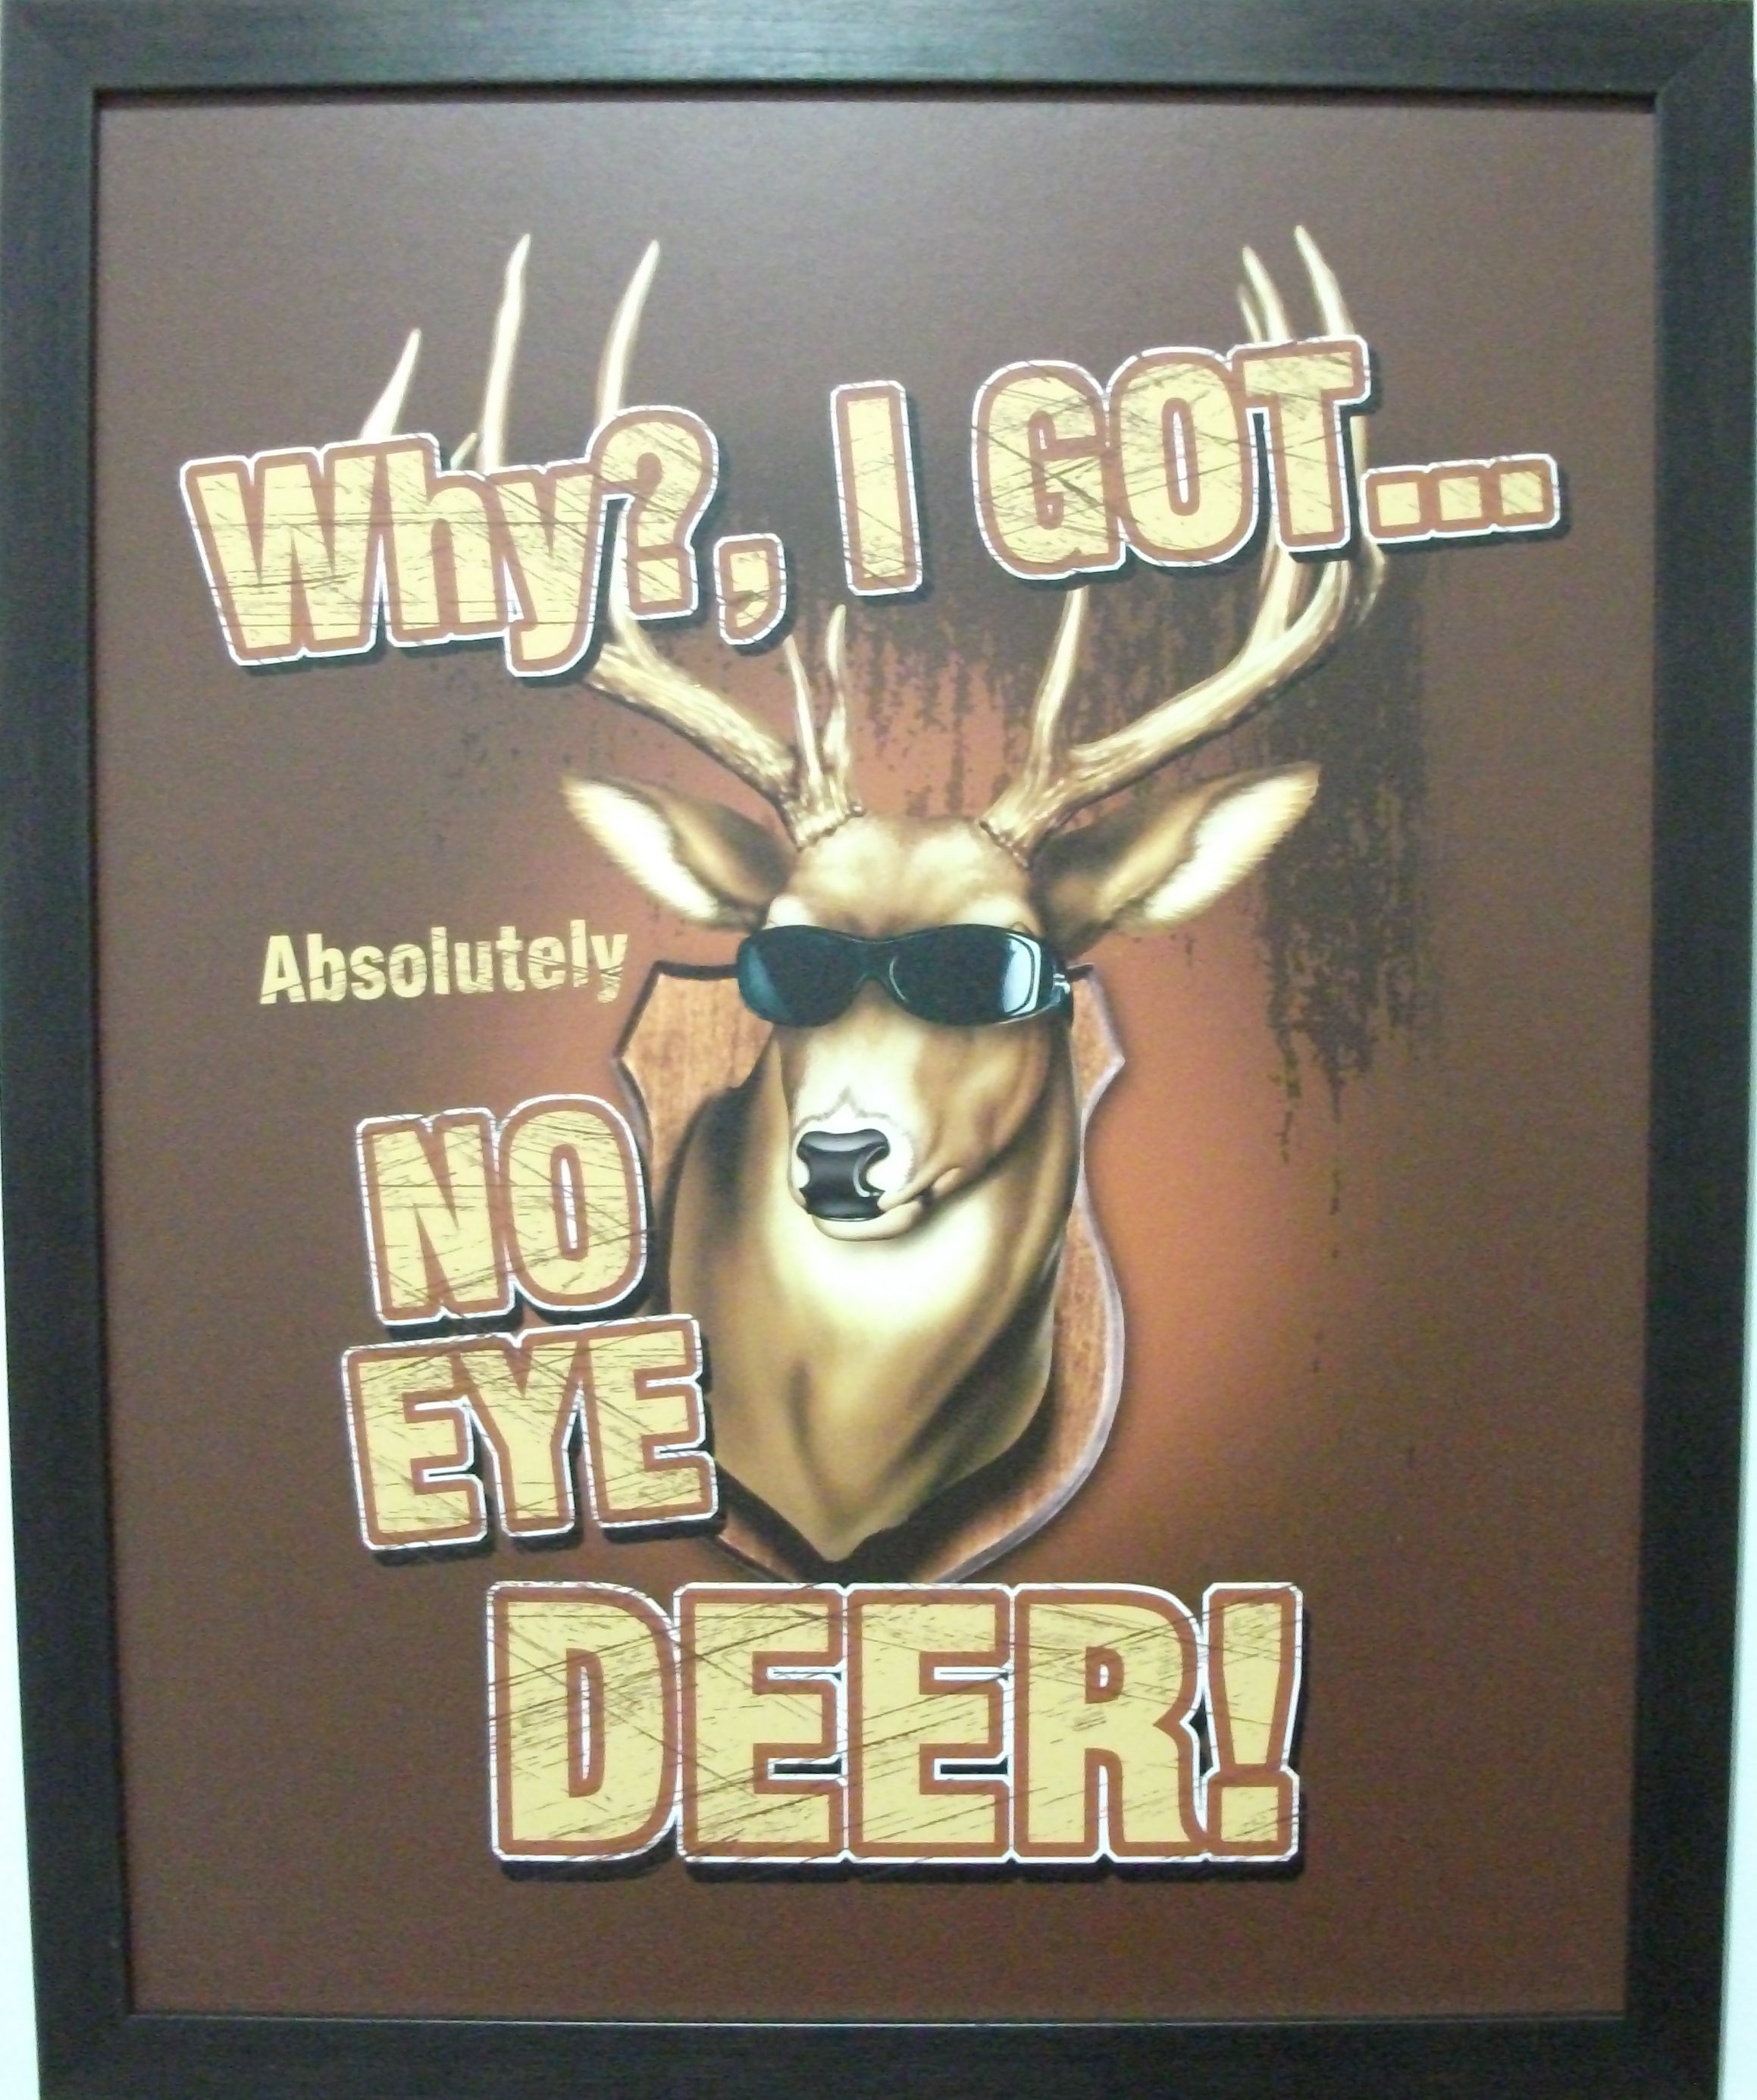 Why I Got Absolutely No Eye Deer